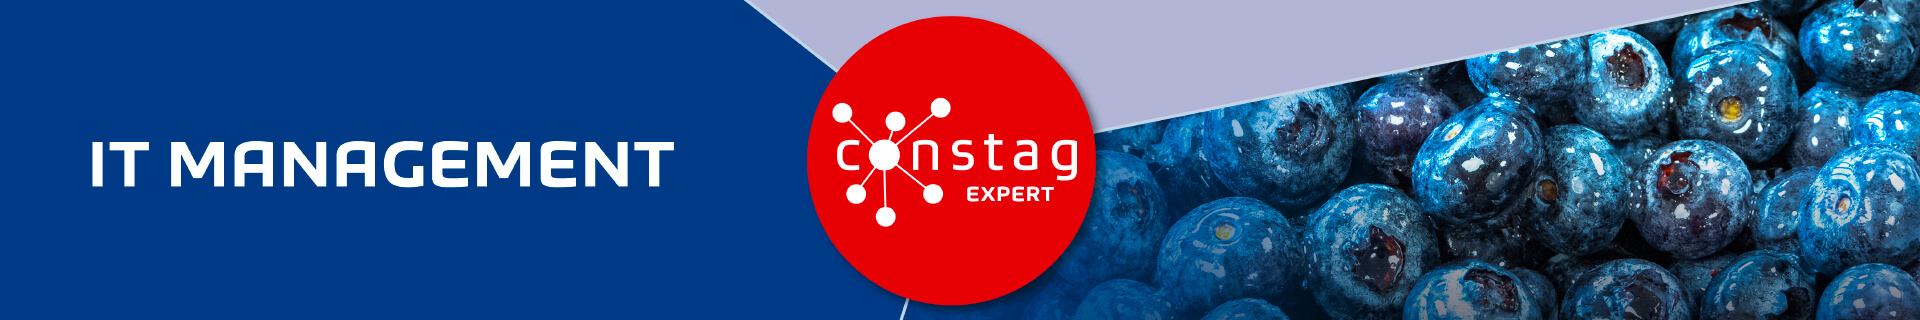 Constag Produkte IT-Management EXPERT